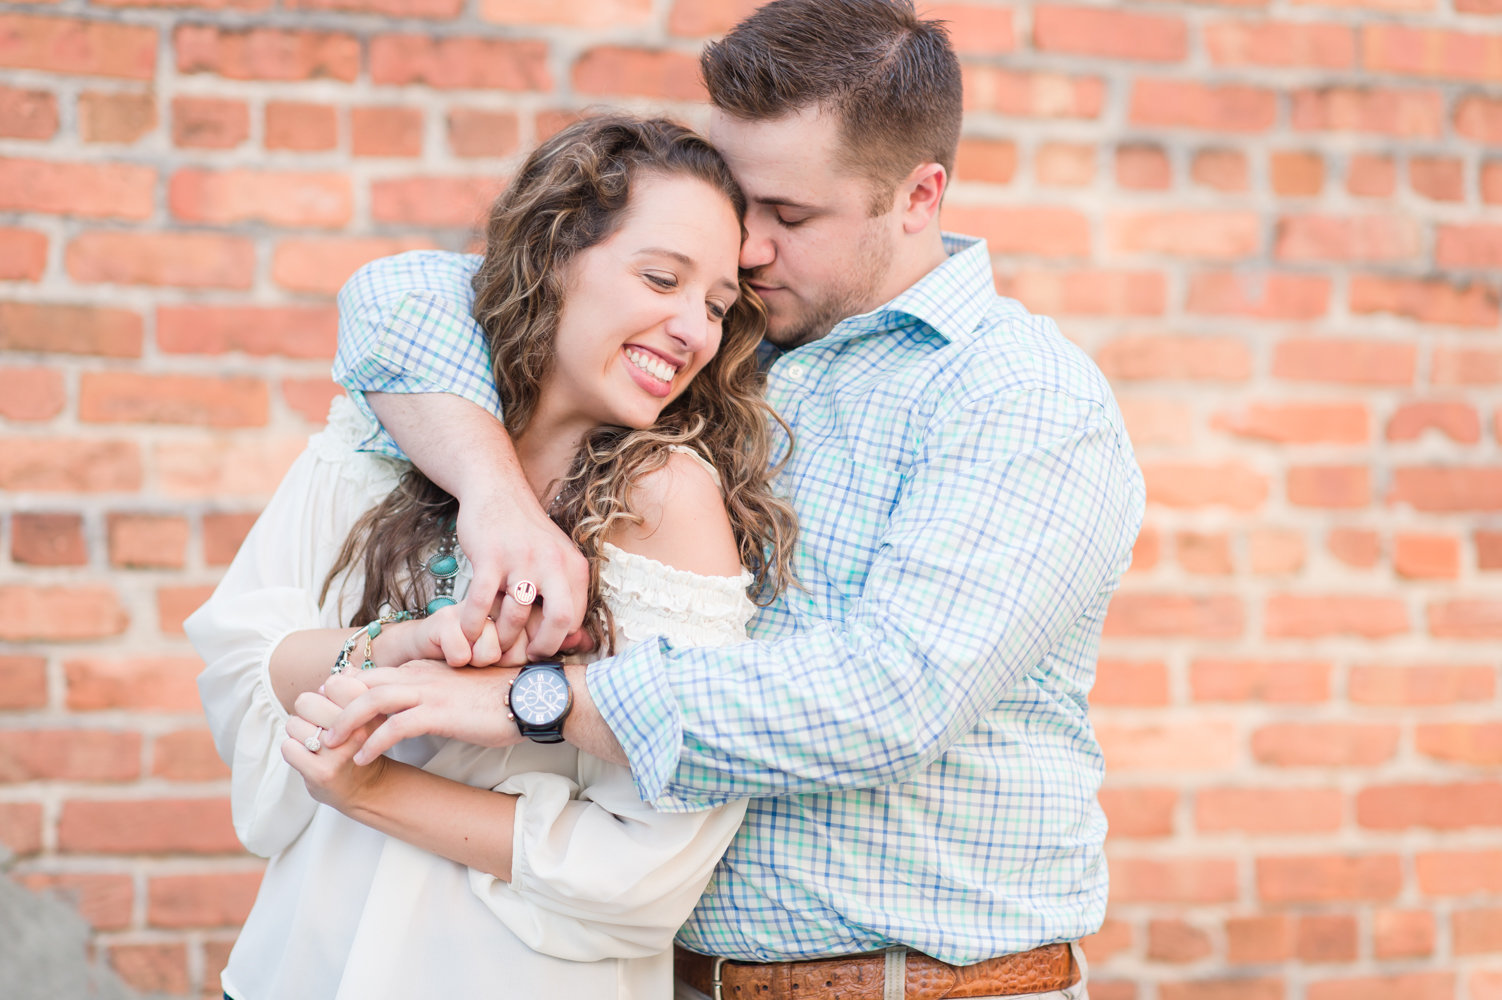 engagement-portraits-christina-forbes-photography-45